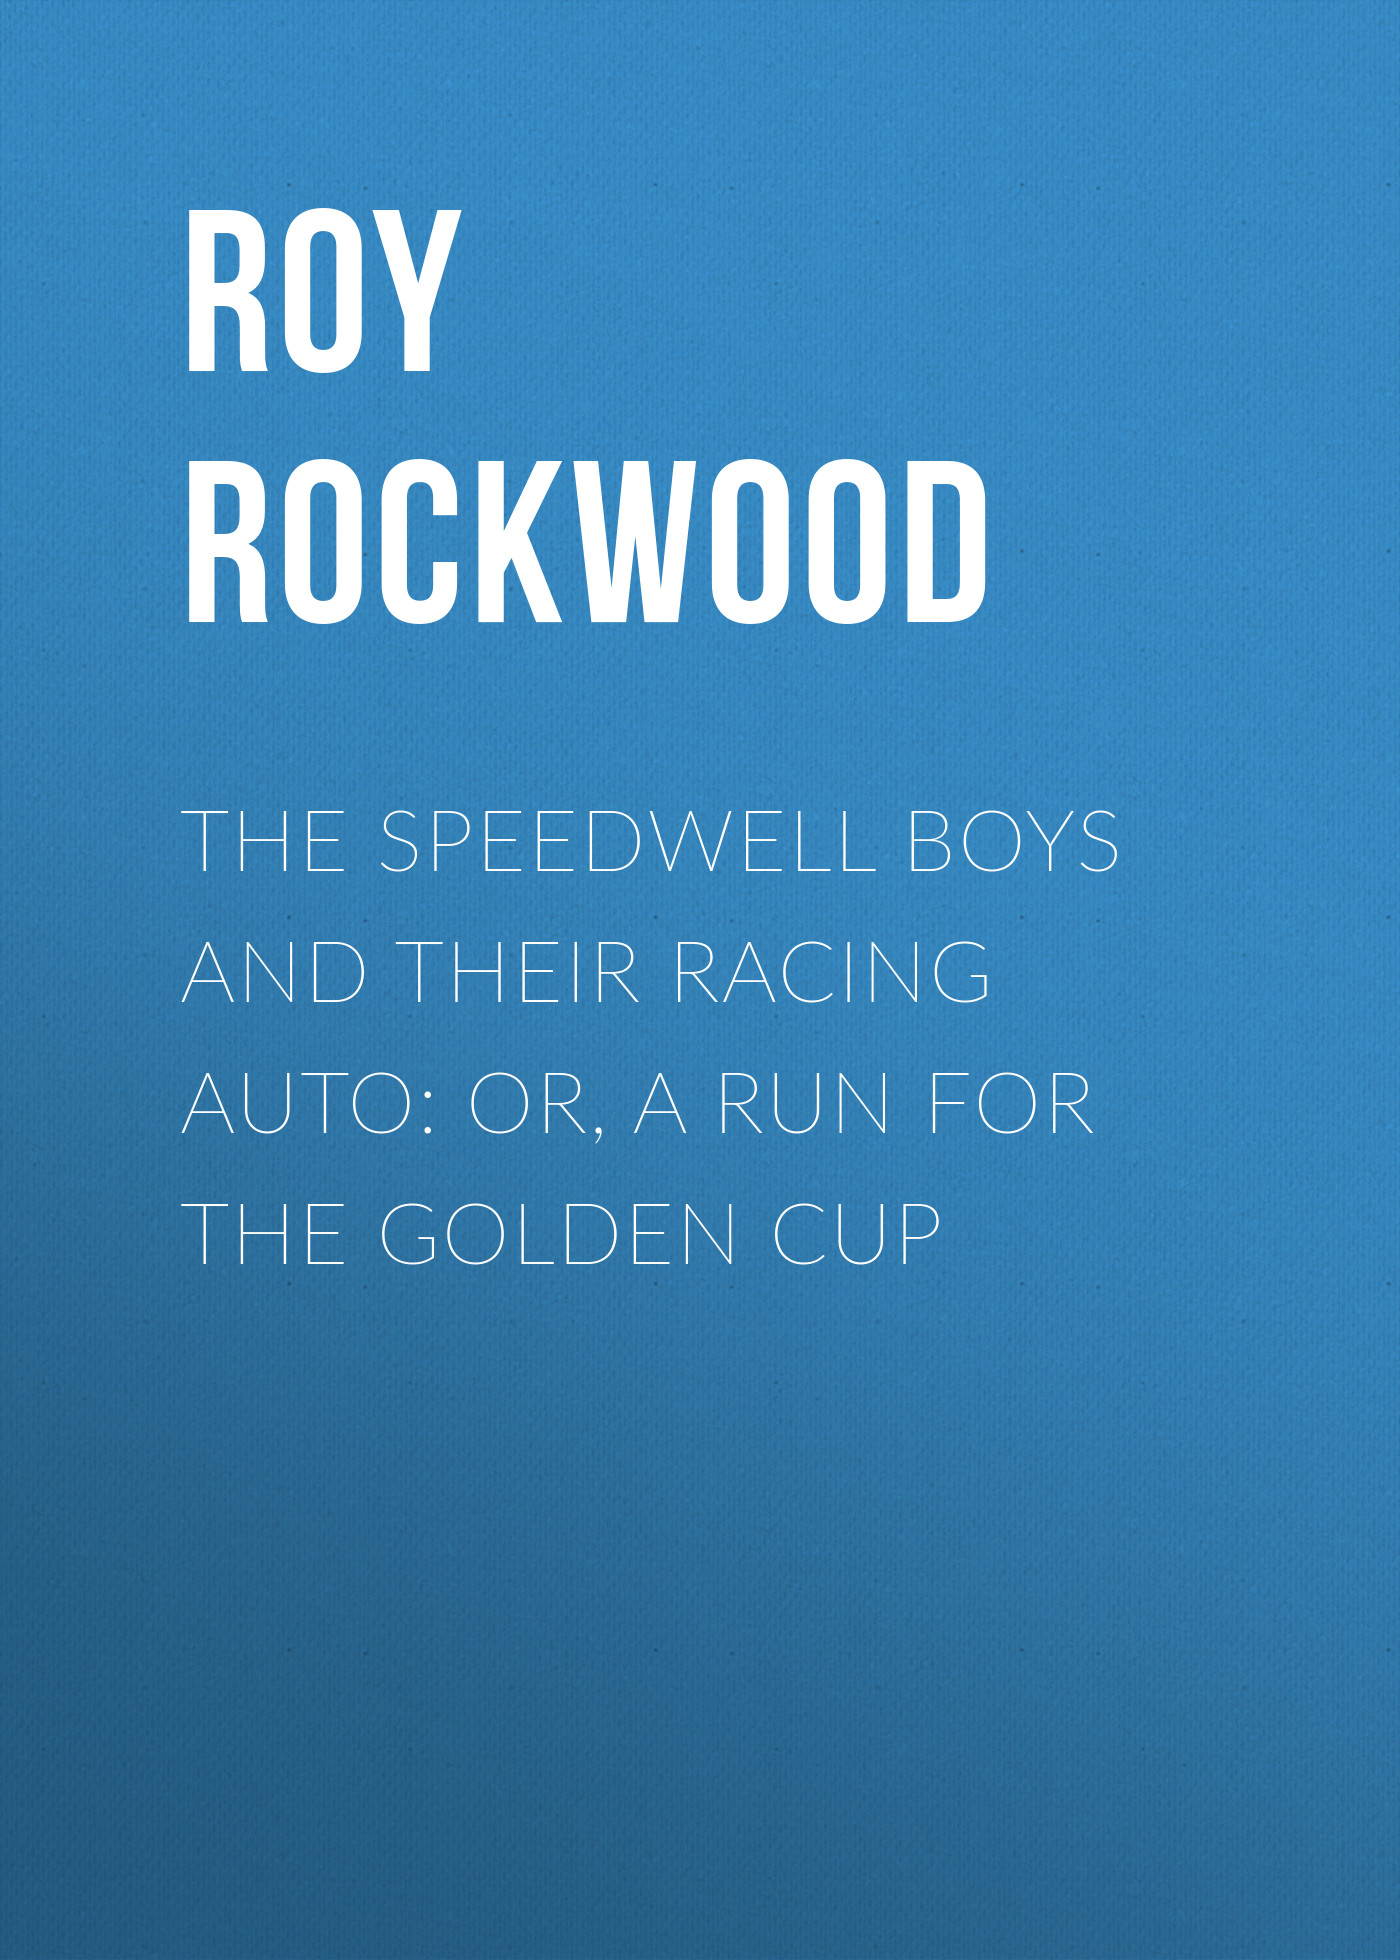 Roy Rockwood The Speedwell Boys and Their Racing Auto: or, A Run for the Golden Cup stylish faux pearl and hollow out crown embellished golden bracelet for women